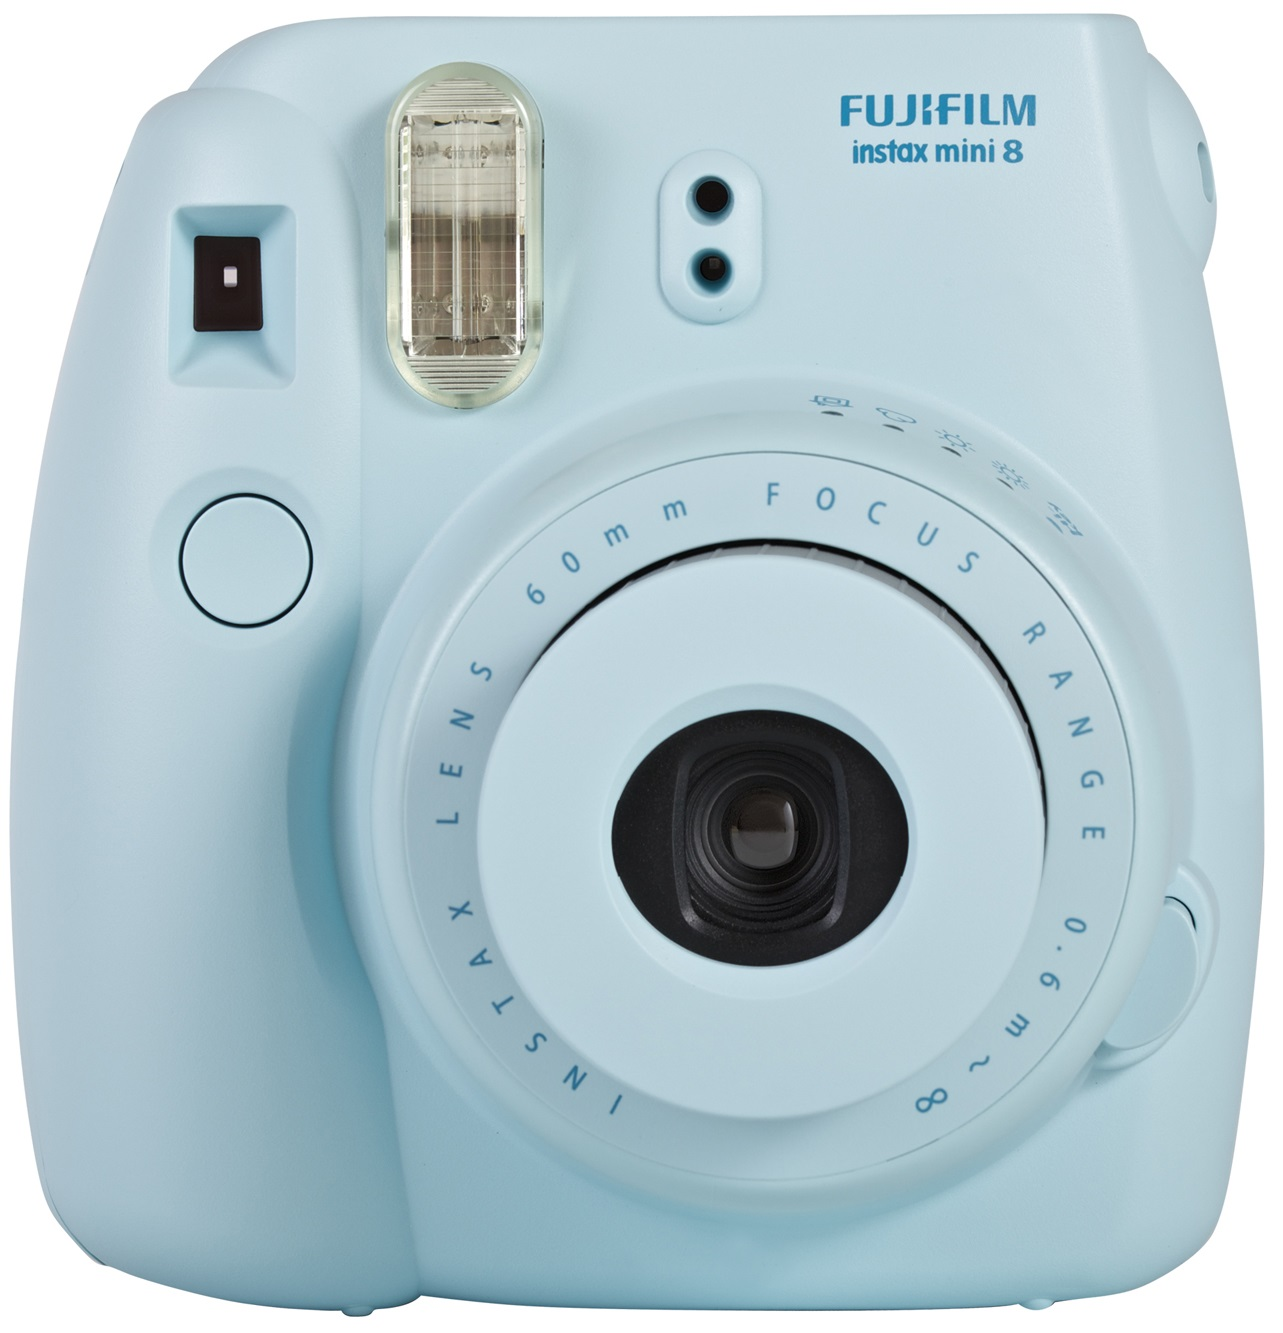 fujifilm instax mini 8 blue instant camera inc 10 shots fuj1584 london. Black Bedroom Furniture Sets. Home Design Ideas